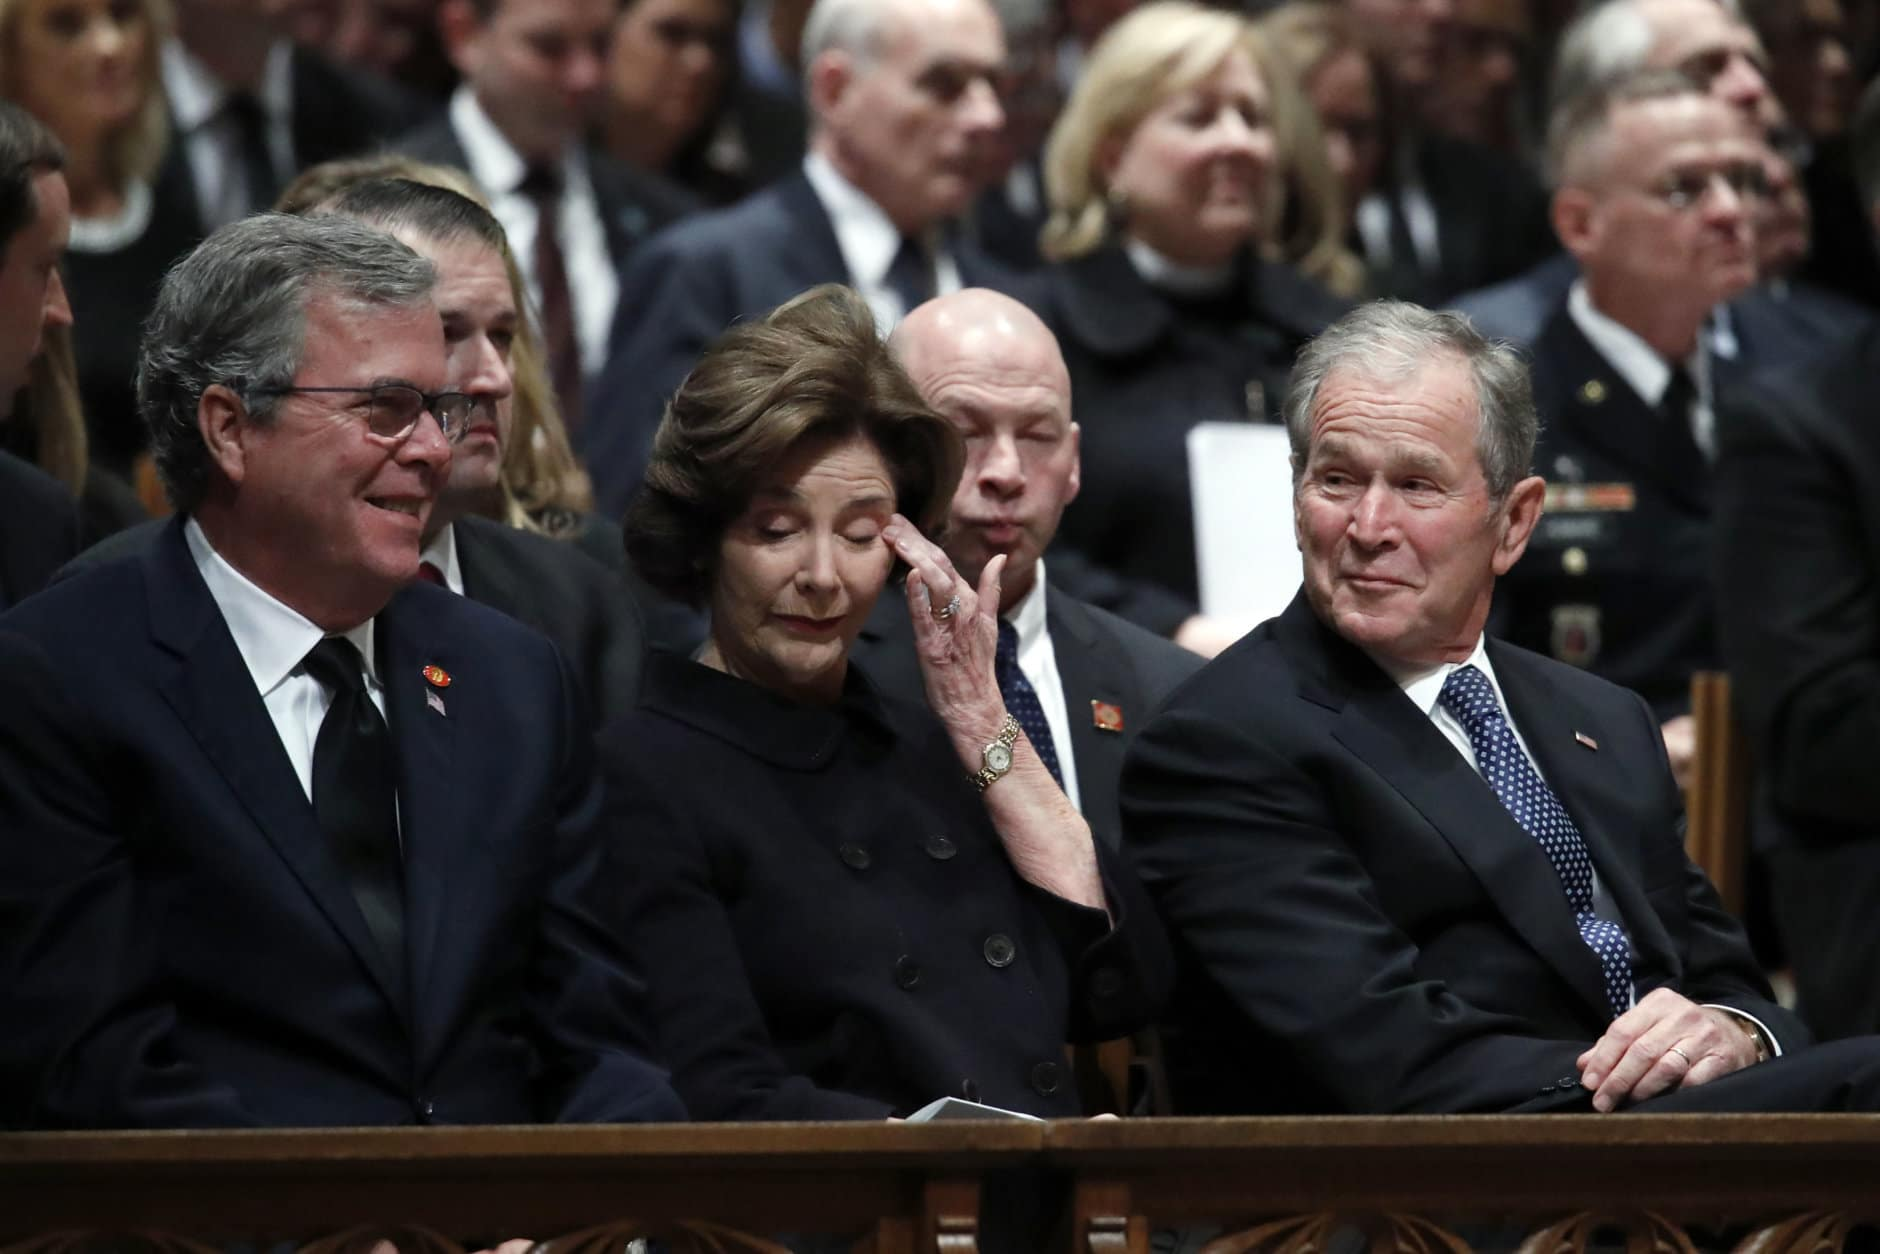 Former Florida Gov. Jeb Bush, Laura Bush and former President George W. Bush listen during a state funeral for former President George H.W. Bush at the Washington National Cathedral on December 5, 2018 in Washington, DC. President Bush will be buried at his final resting place at the George H.W. Bush Presidential Library at Texas A&M University in College Station, Texas. A WWII combat veteran, Bush served as a member of Congress from Texas, ambassador to the United Nations, director of the CIA, vice president and 41st president of the United States. (Photo by Alex Brandon - Pool/Getty Images)